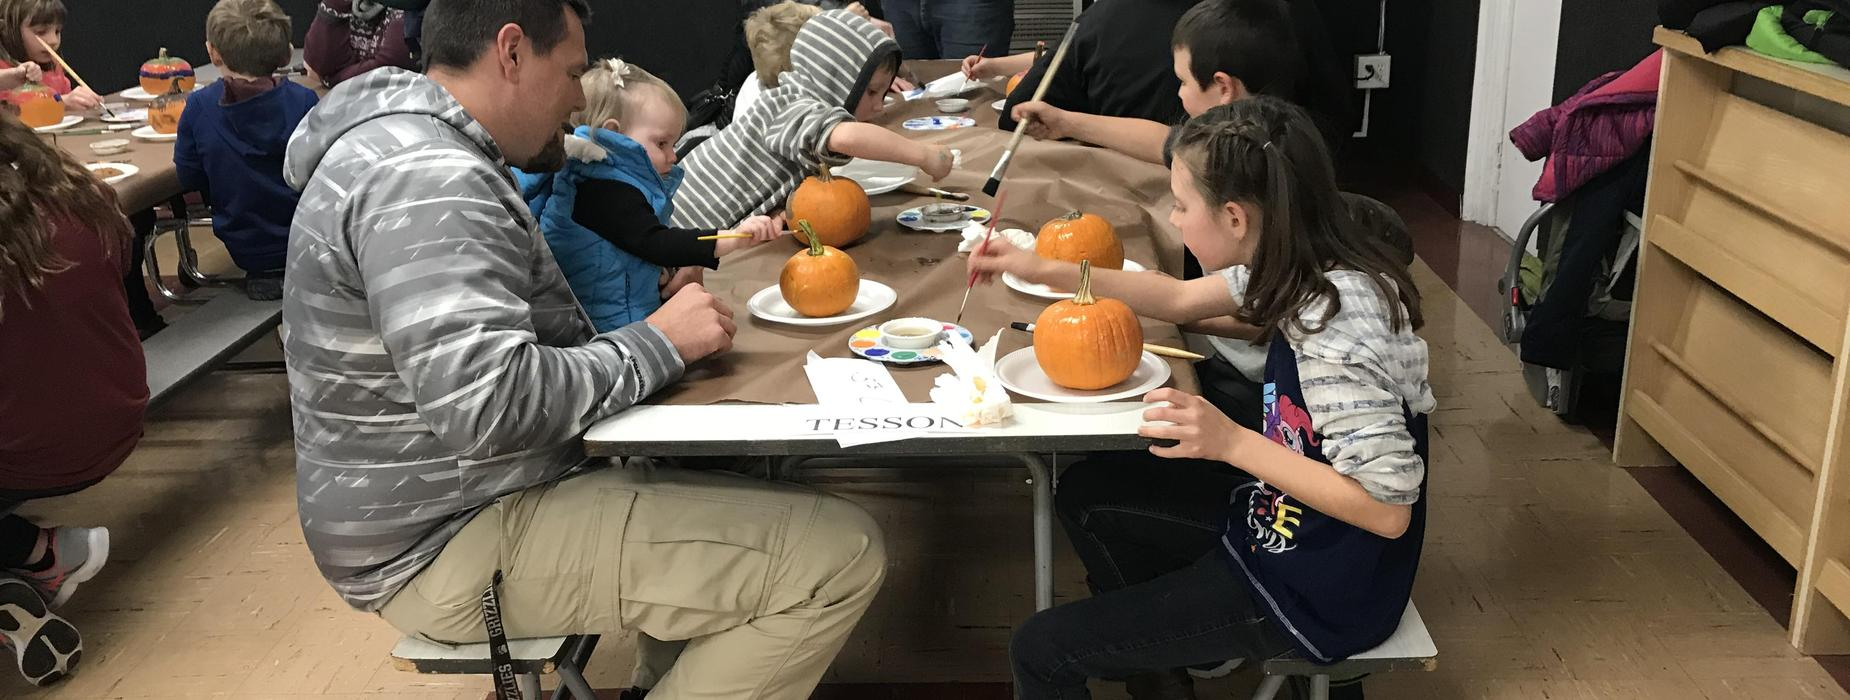 Parents and Students Work on Painting Pumpkins